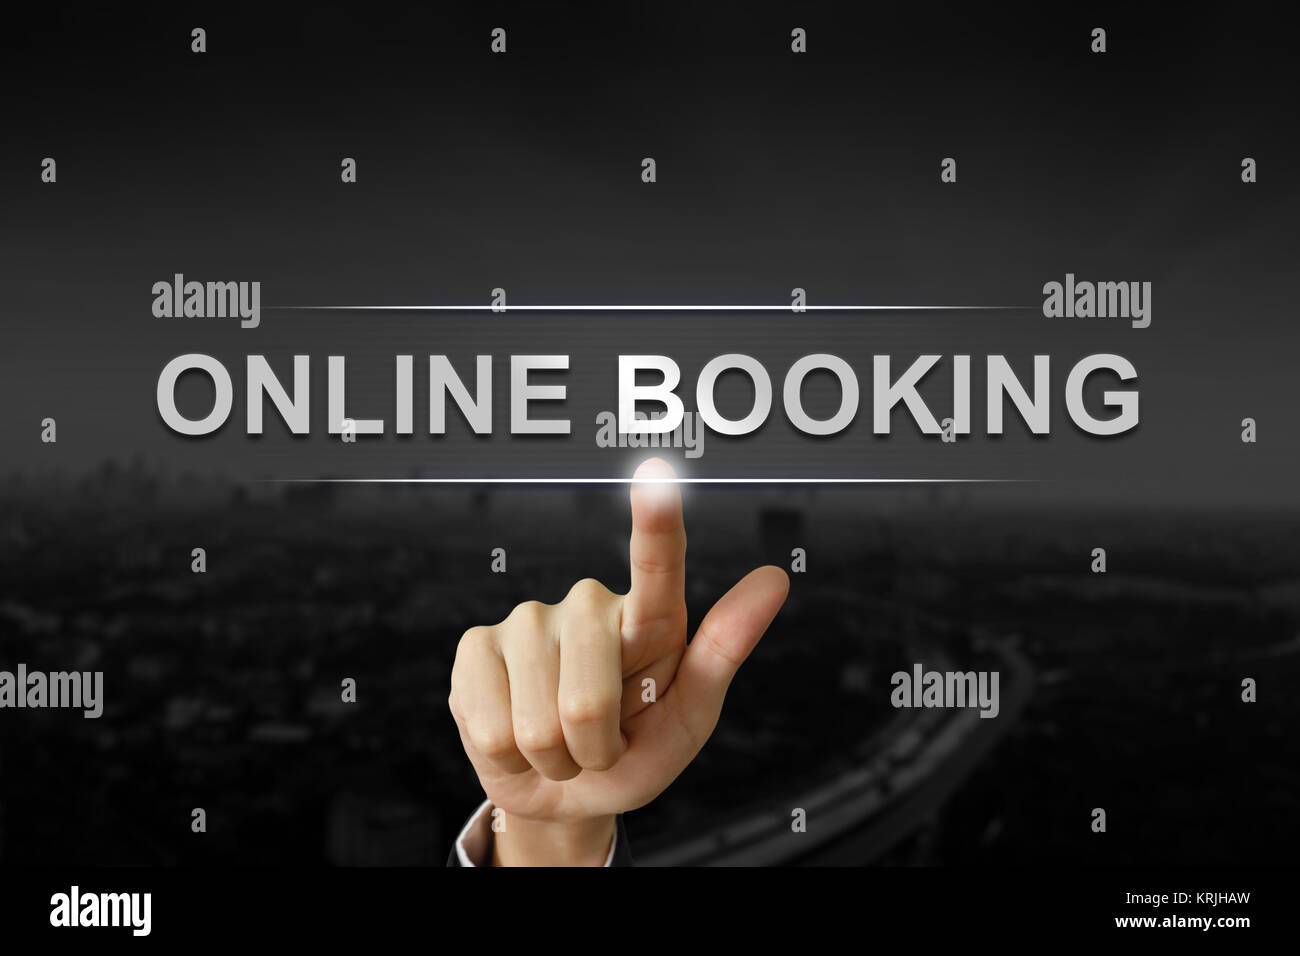 business hand pushing online booking button on black blurred background - Stock Image